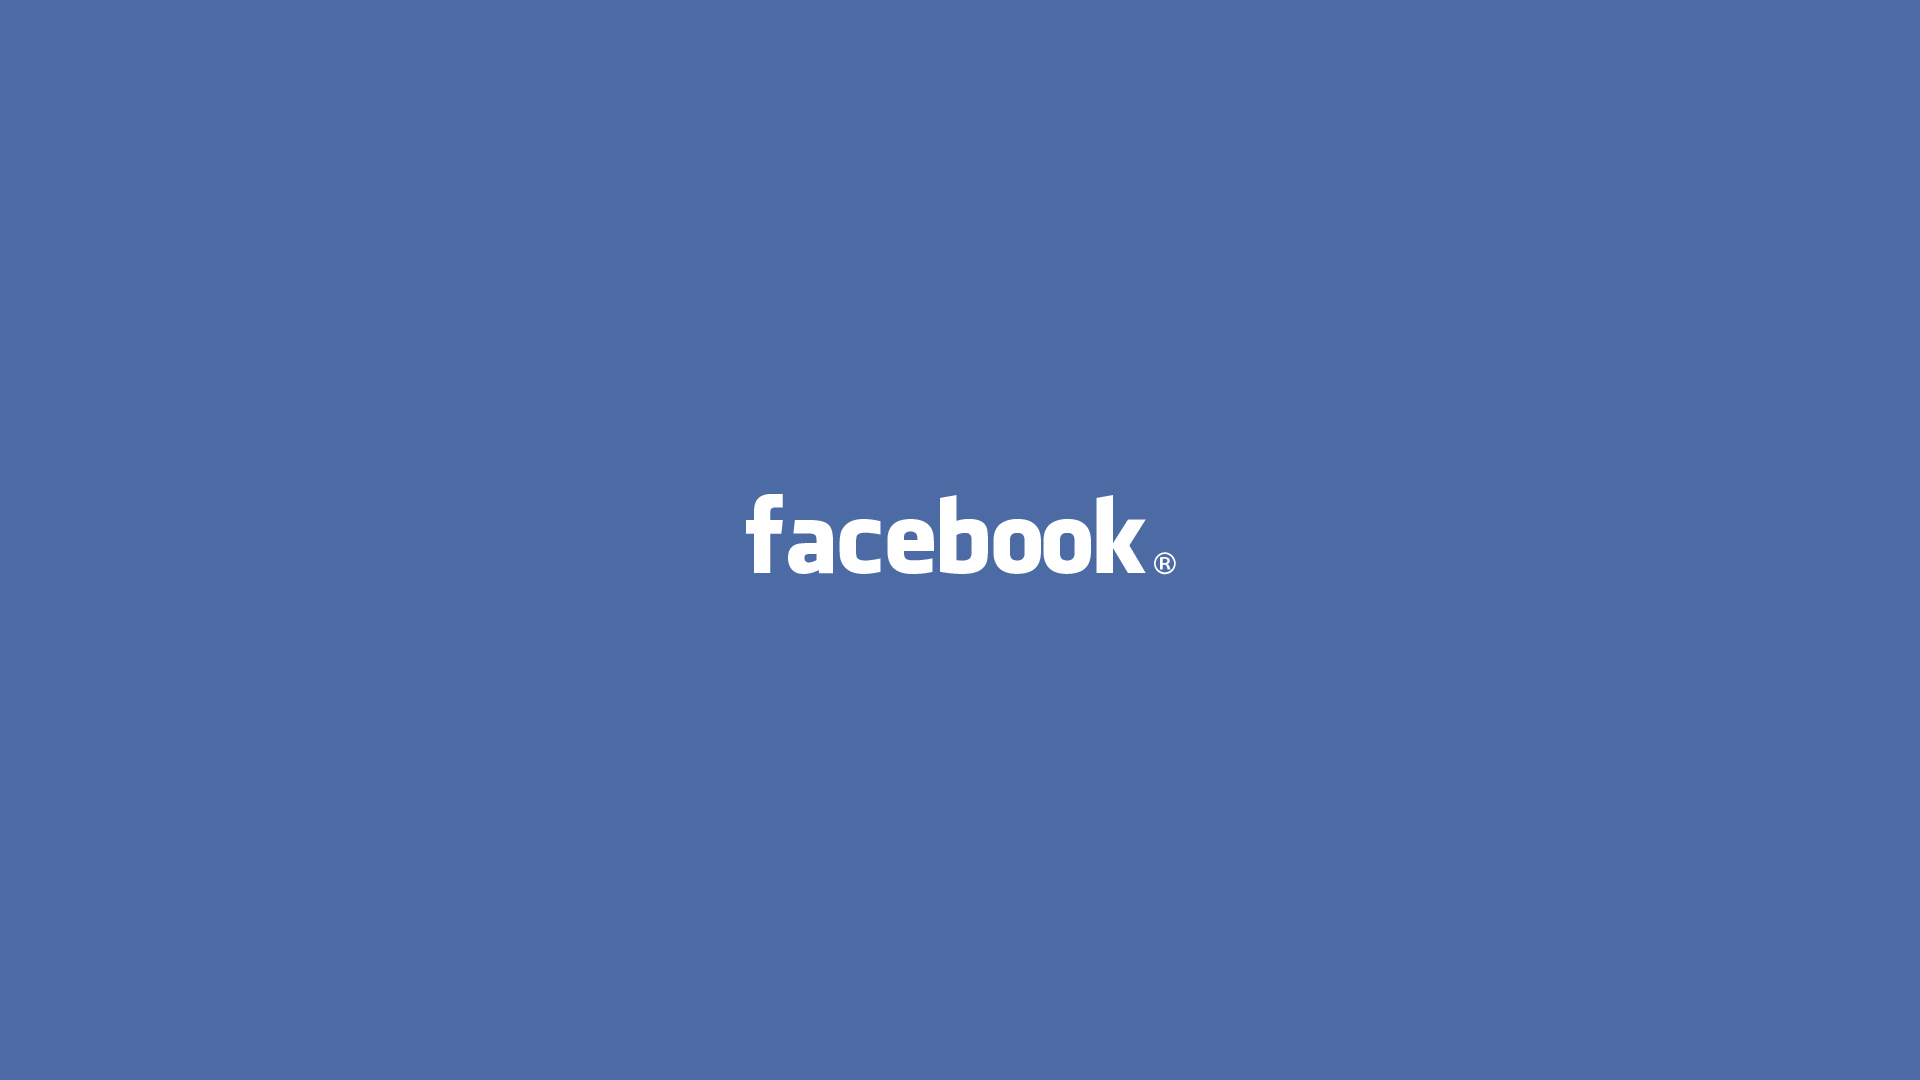 top post on facebook accounts in 2016